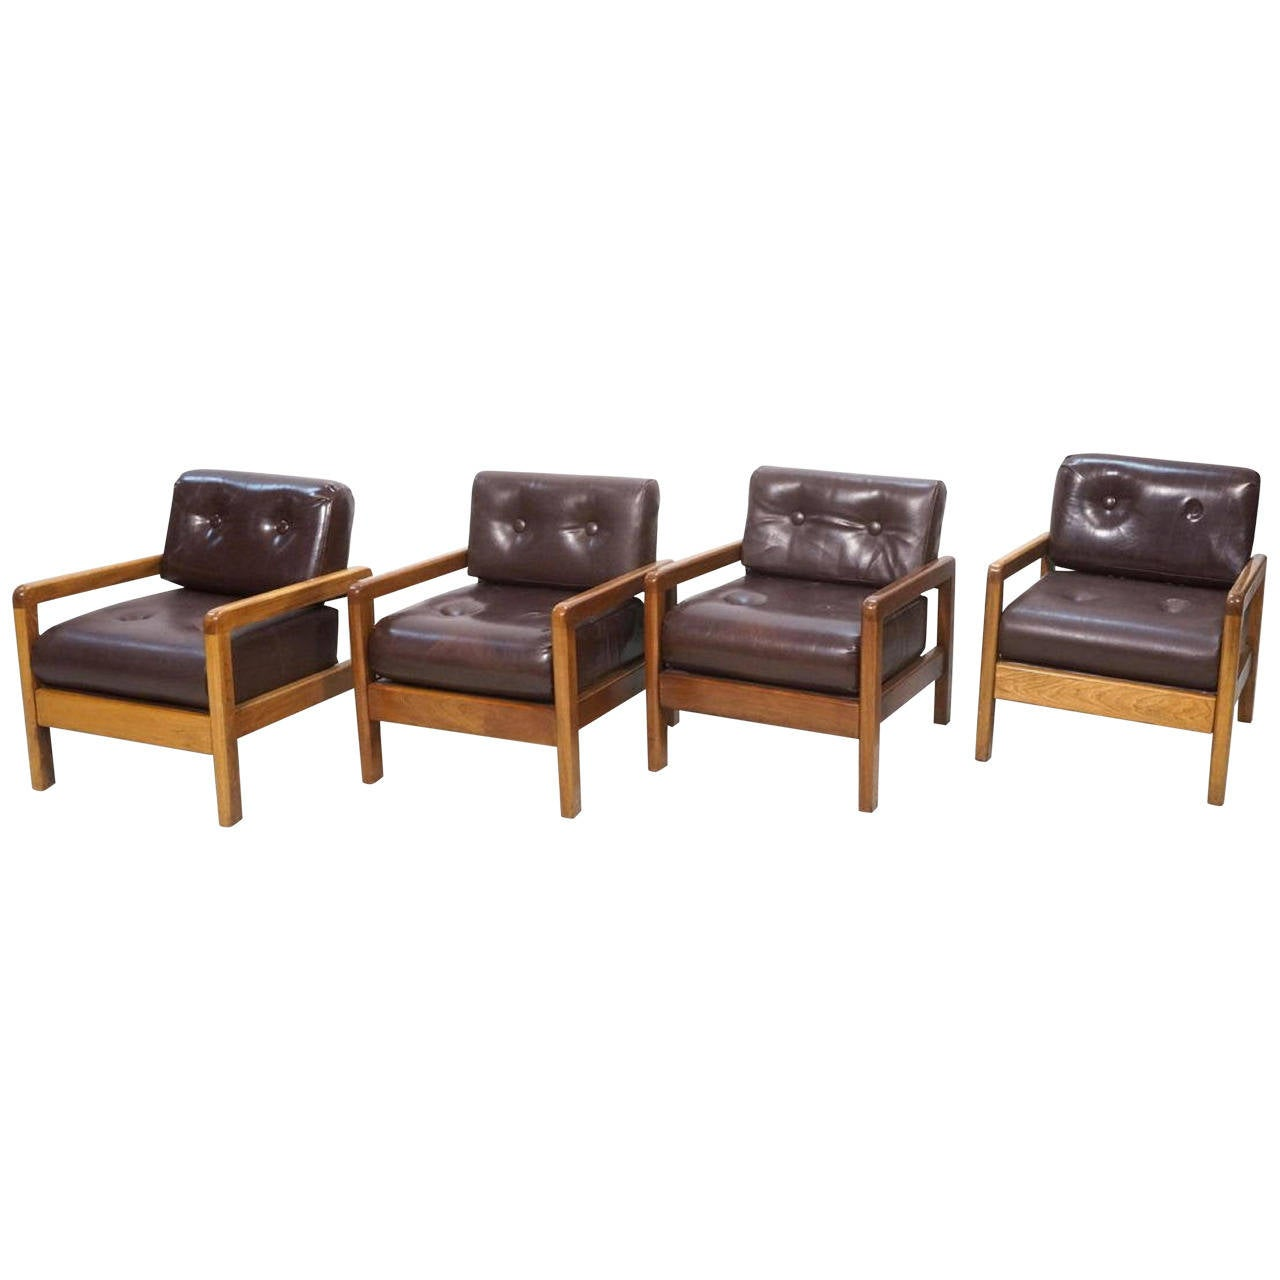 Stylish Milo Baughman Lounge Chairs for Thayer Coggin For Sale